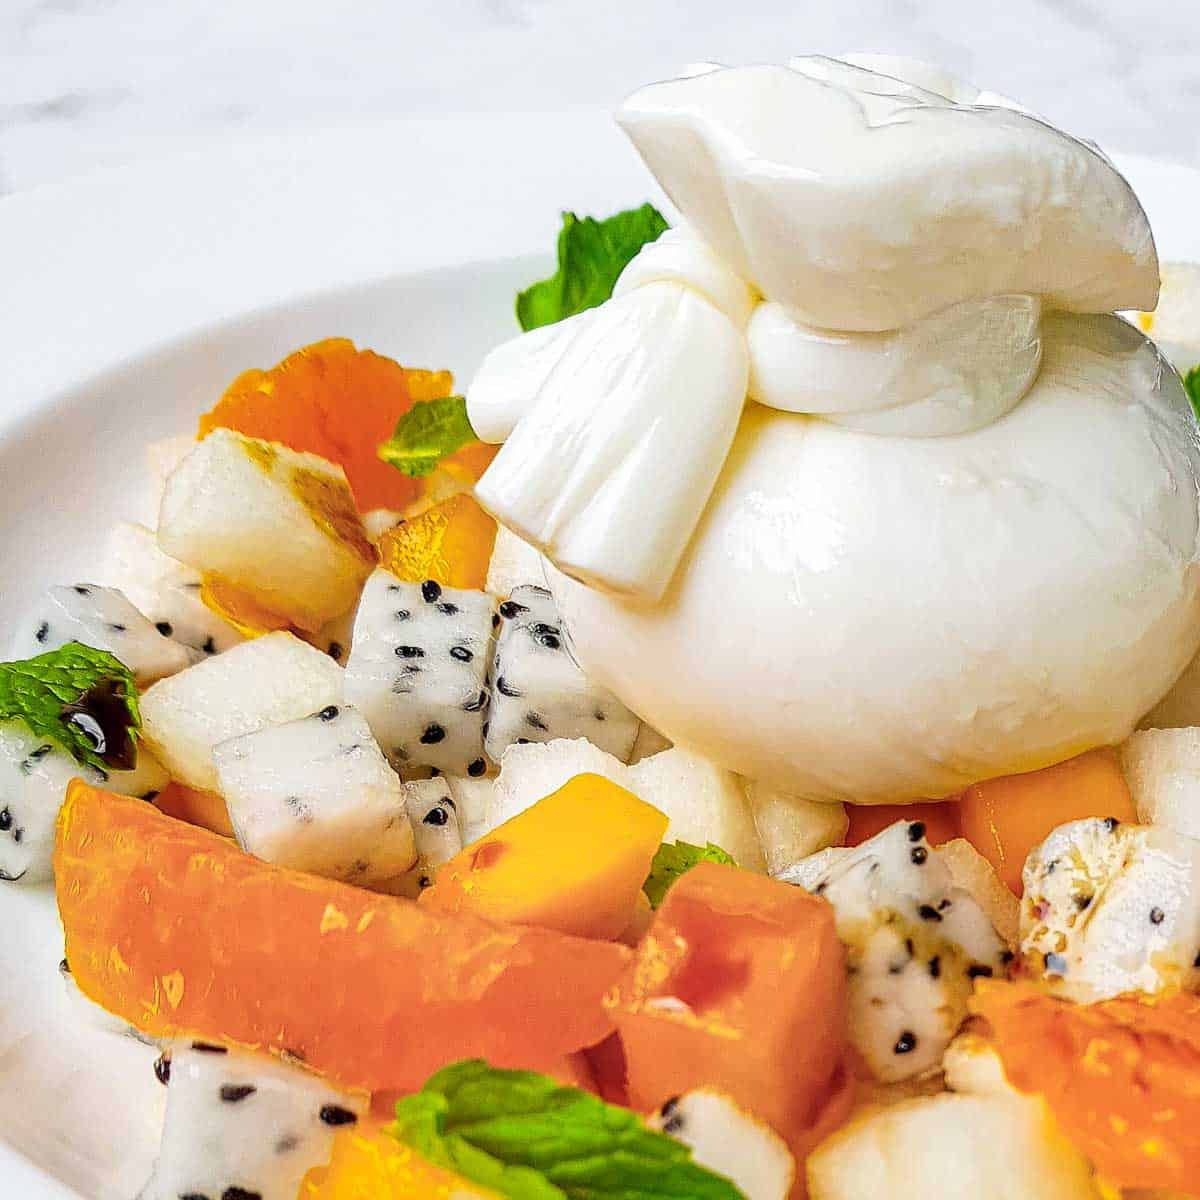 Side close up shot of colorful burrata salad garnished with mint in a white bowl on a marble table.